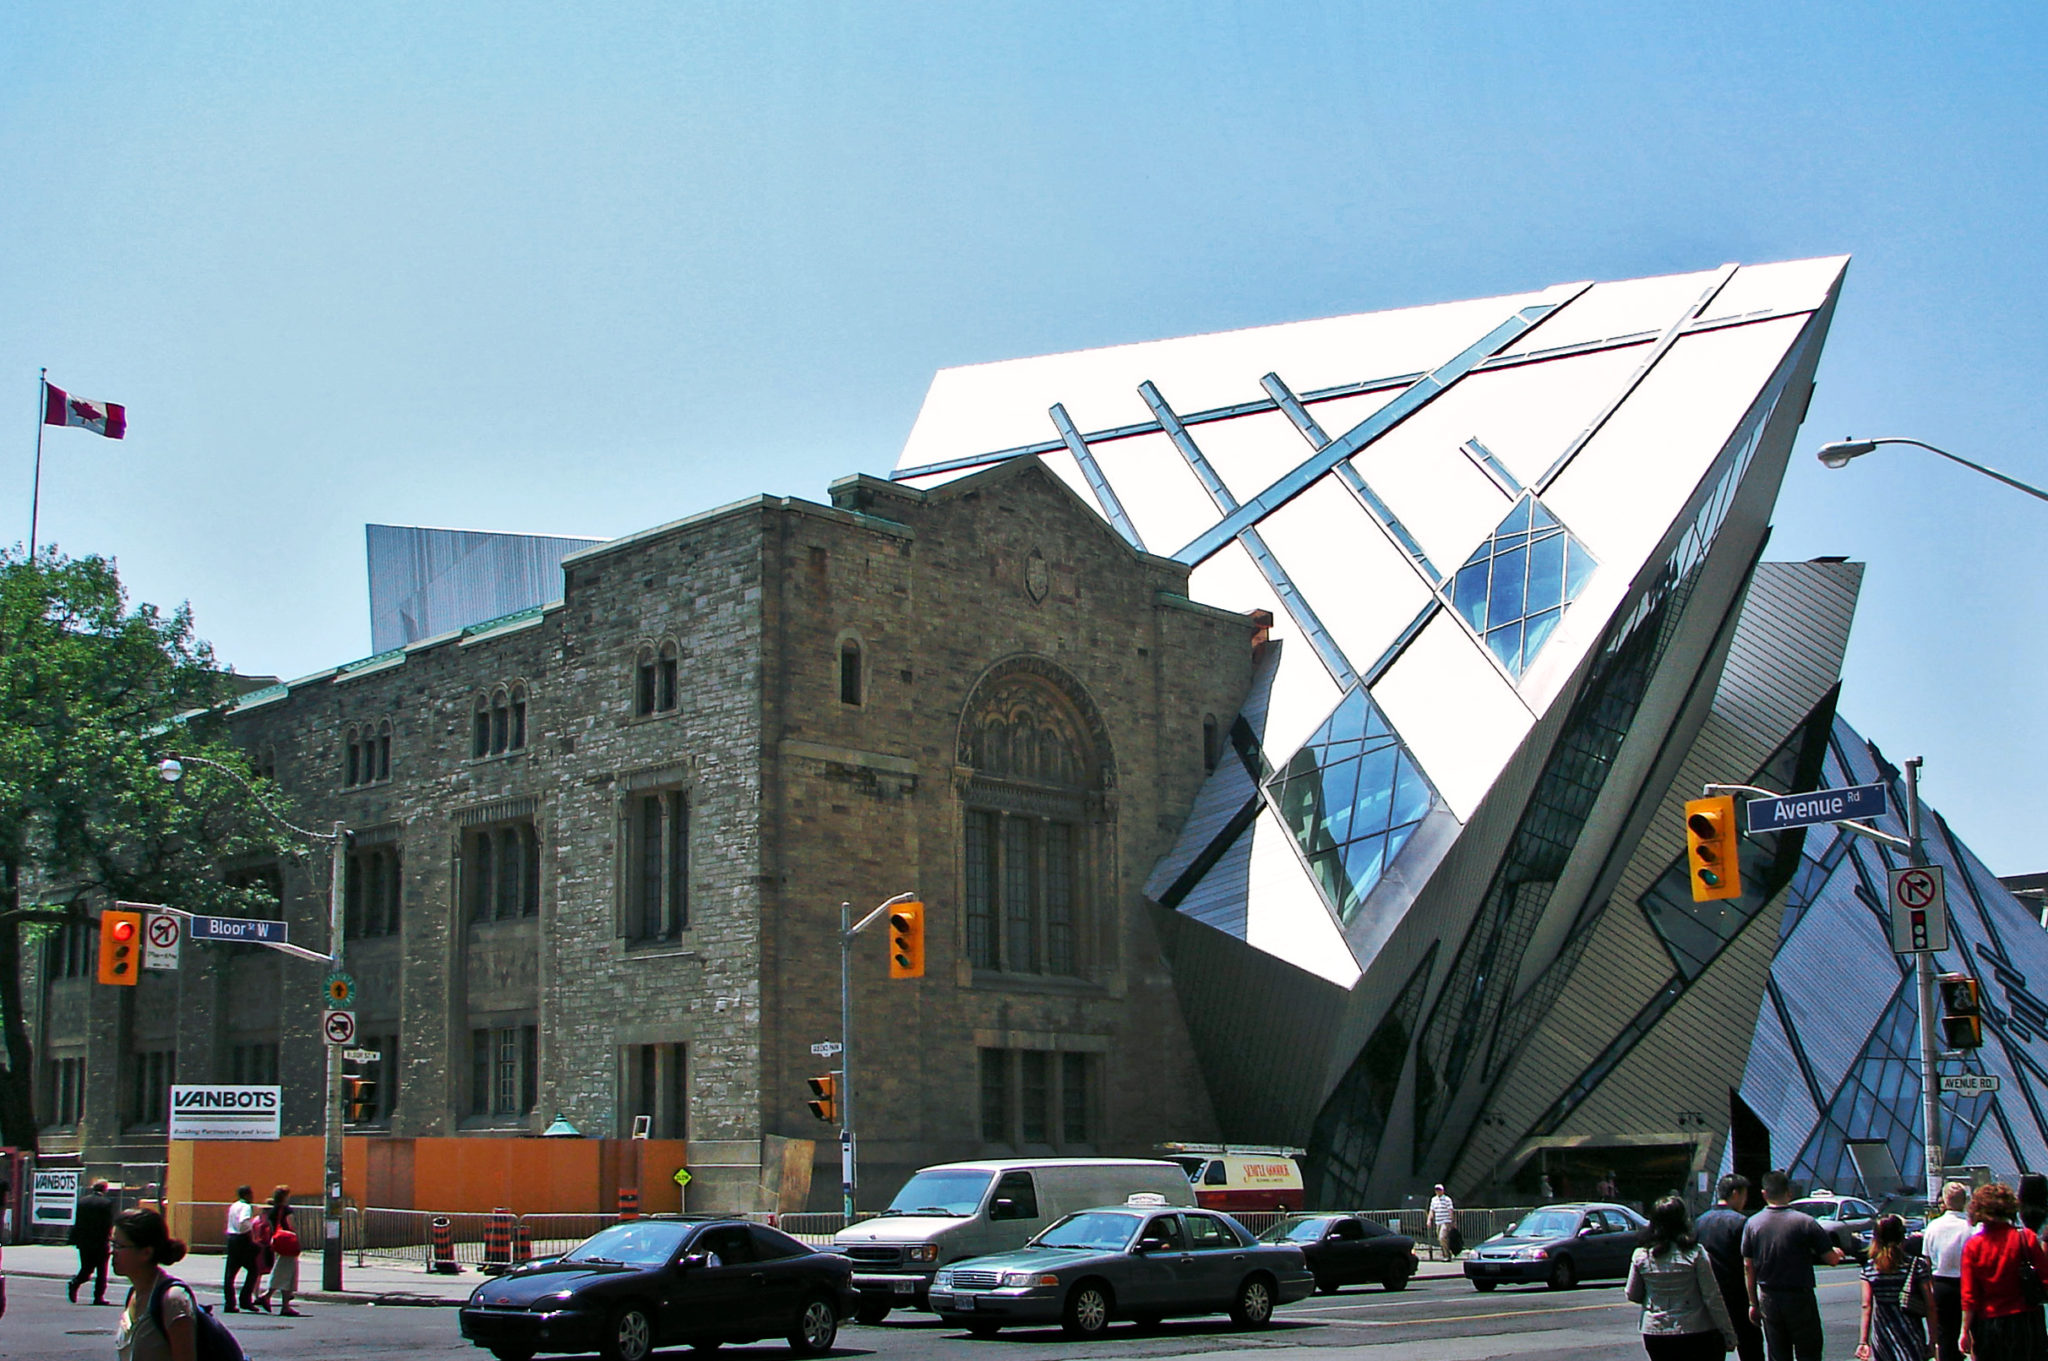 Outside shot of Royal Ontario Museum during daytime